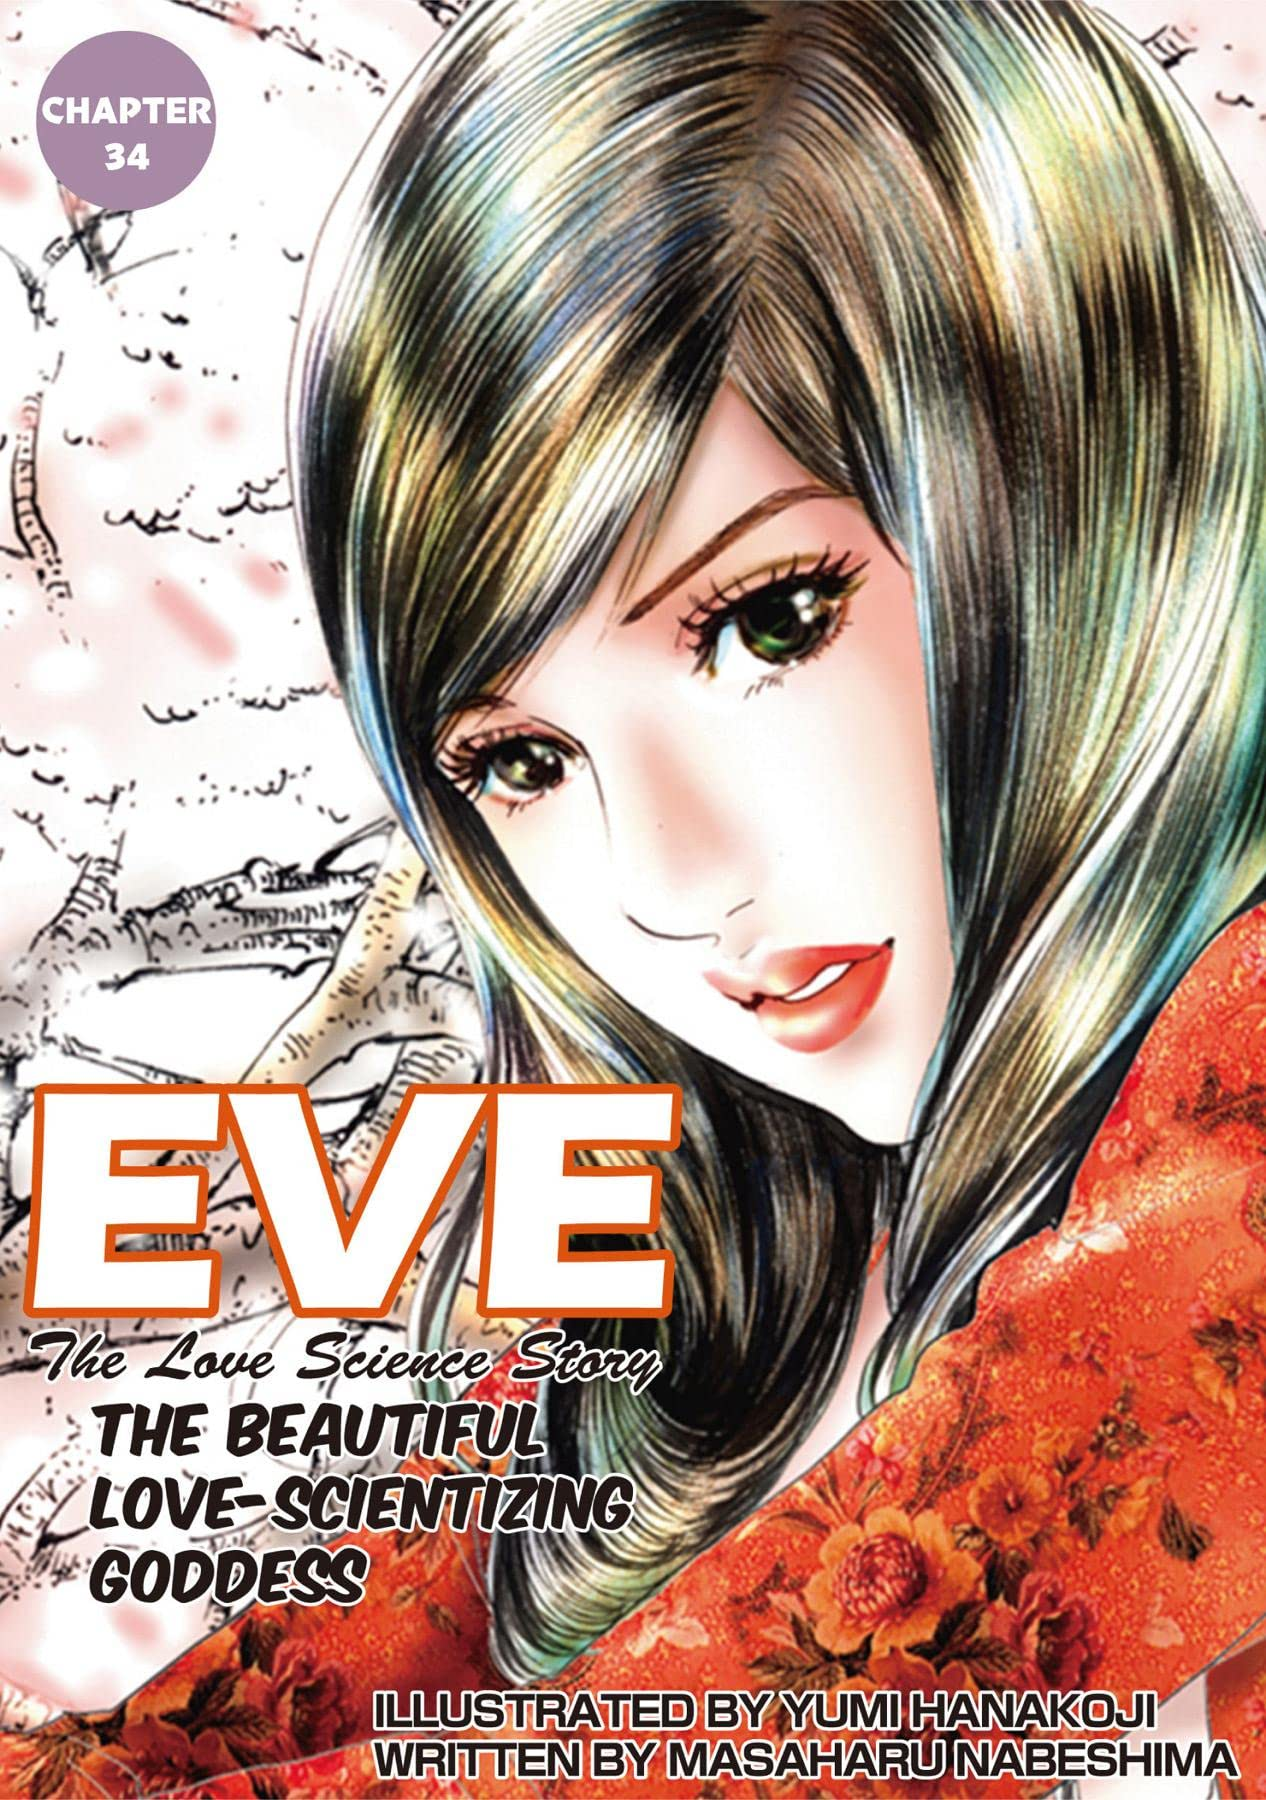 EVE:THE BEAUTIFUL LOVE-SCIENTIZING GODDESS #34